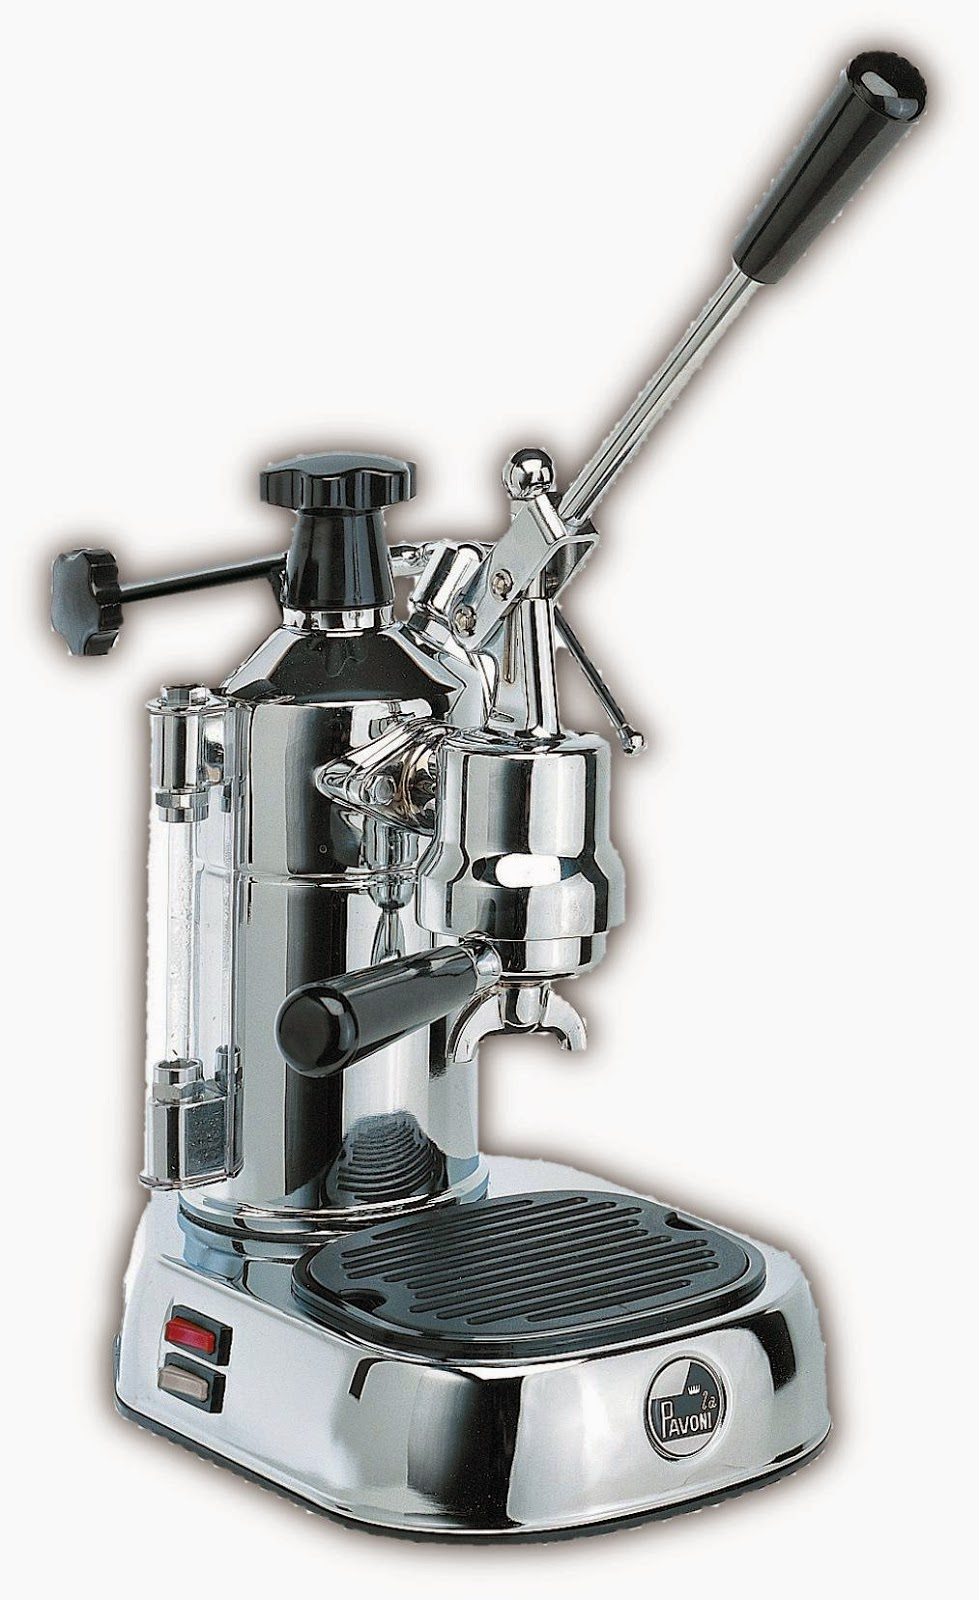 Italian Espresso Makers